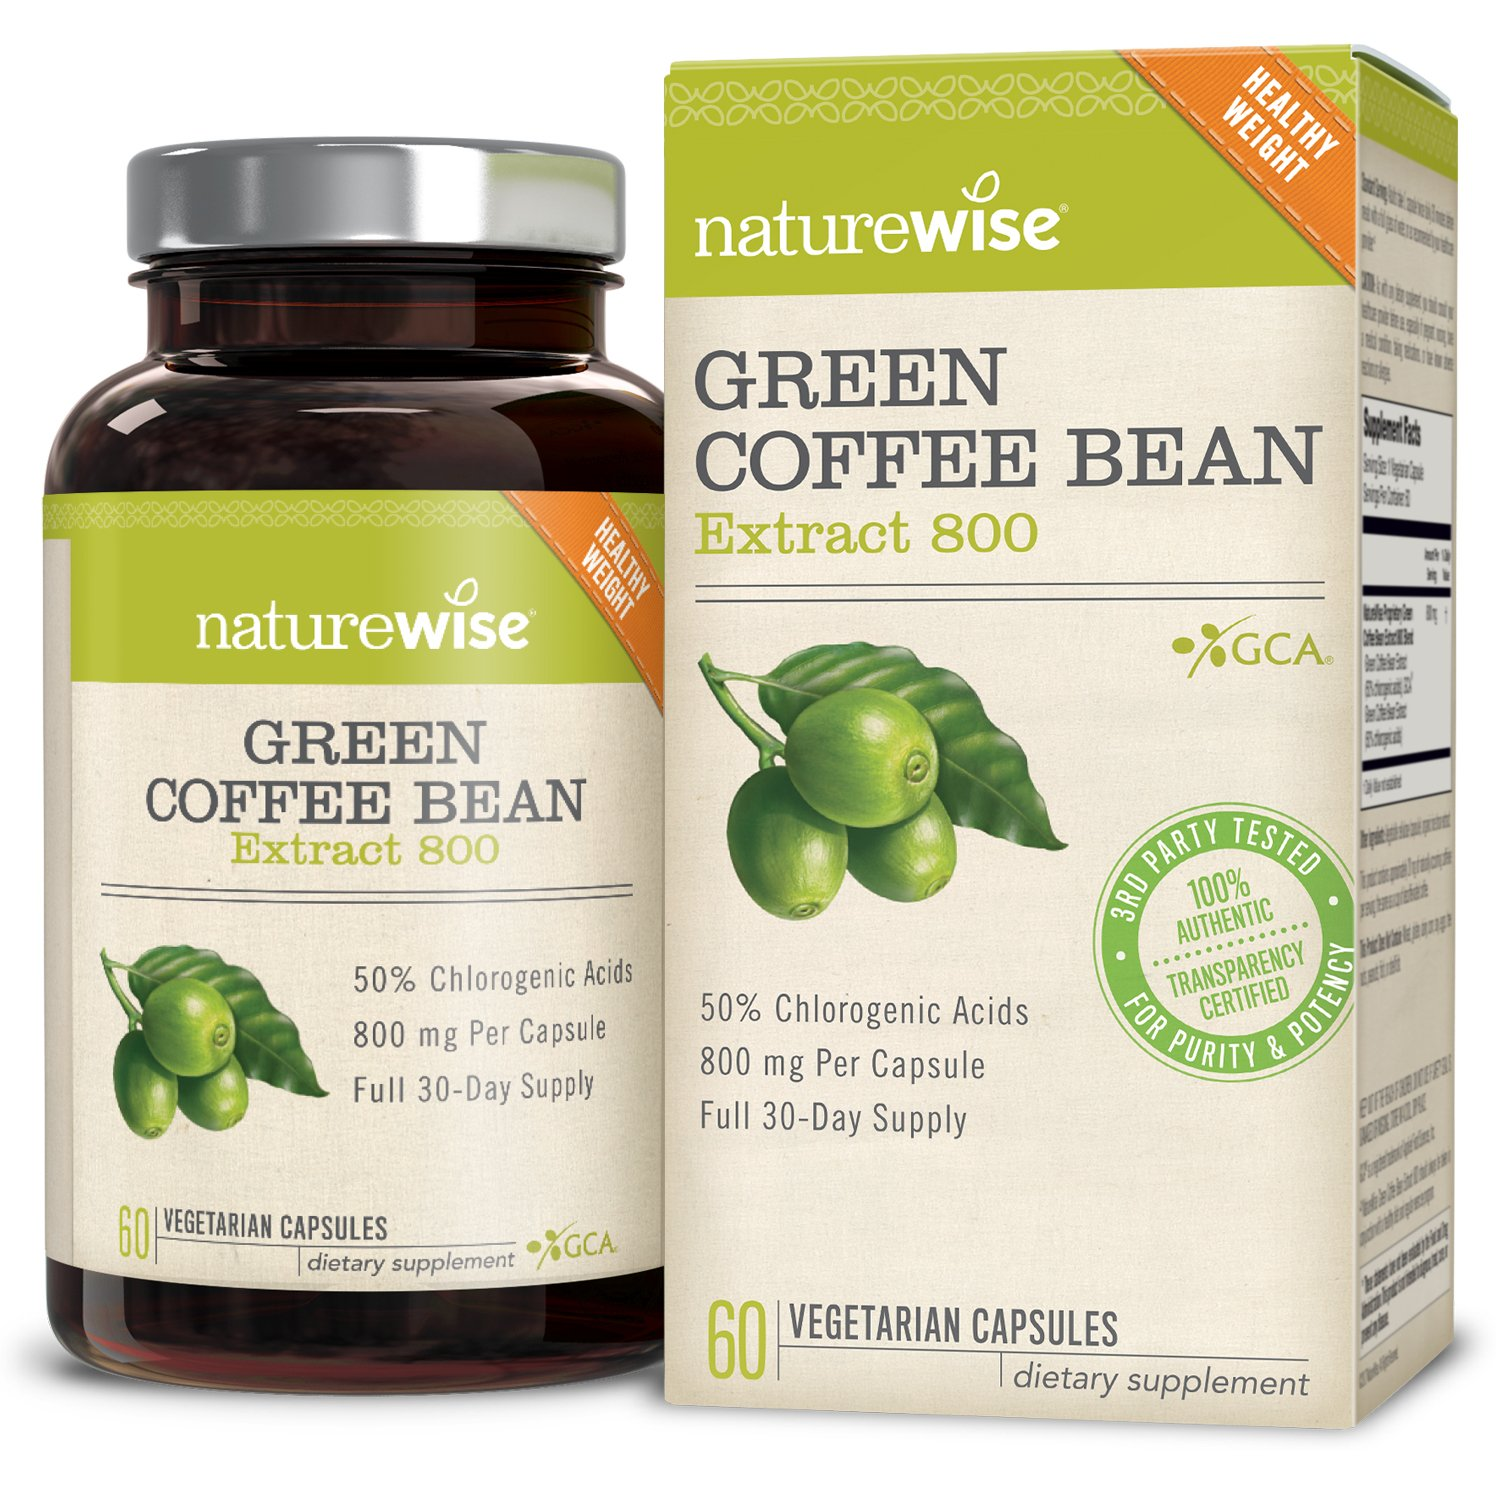 NatureWise Green Coffee Bean Extract 100% Pure with Antioxidants, All Natural Weight Loss Supplement, Maintains Normal Blood Sugar Levels, 50% Chlorogenic Acid, Non-GMO, Gluten-Free,